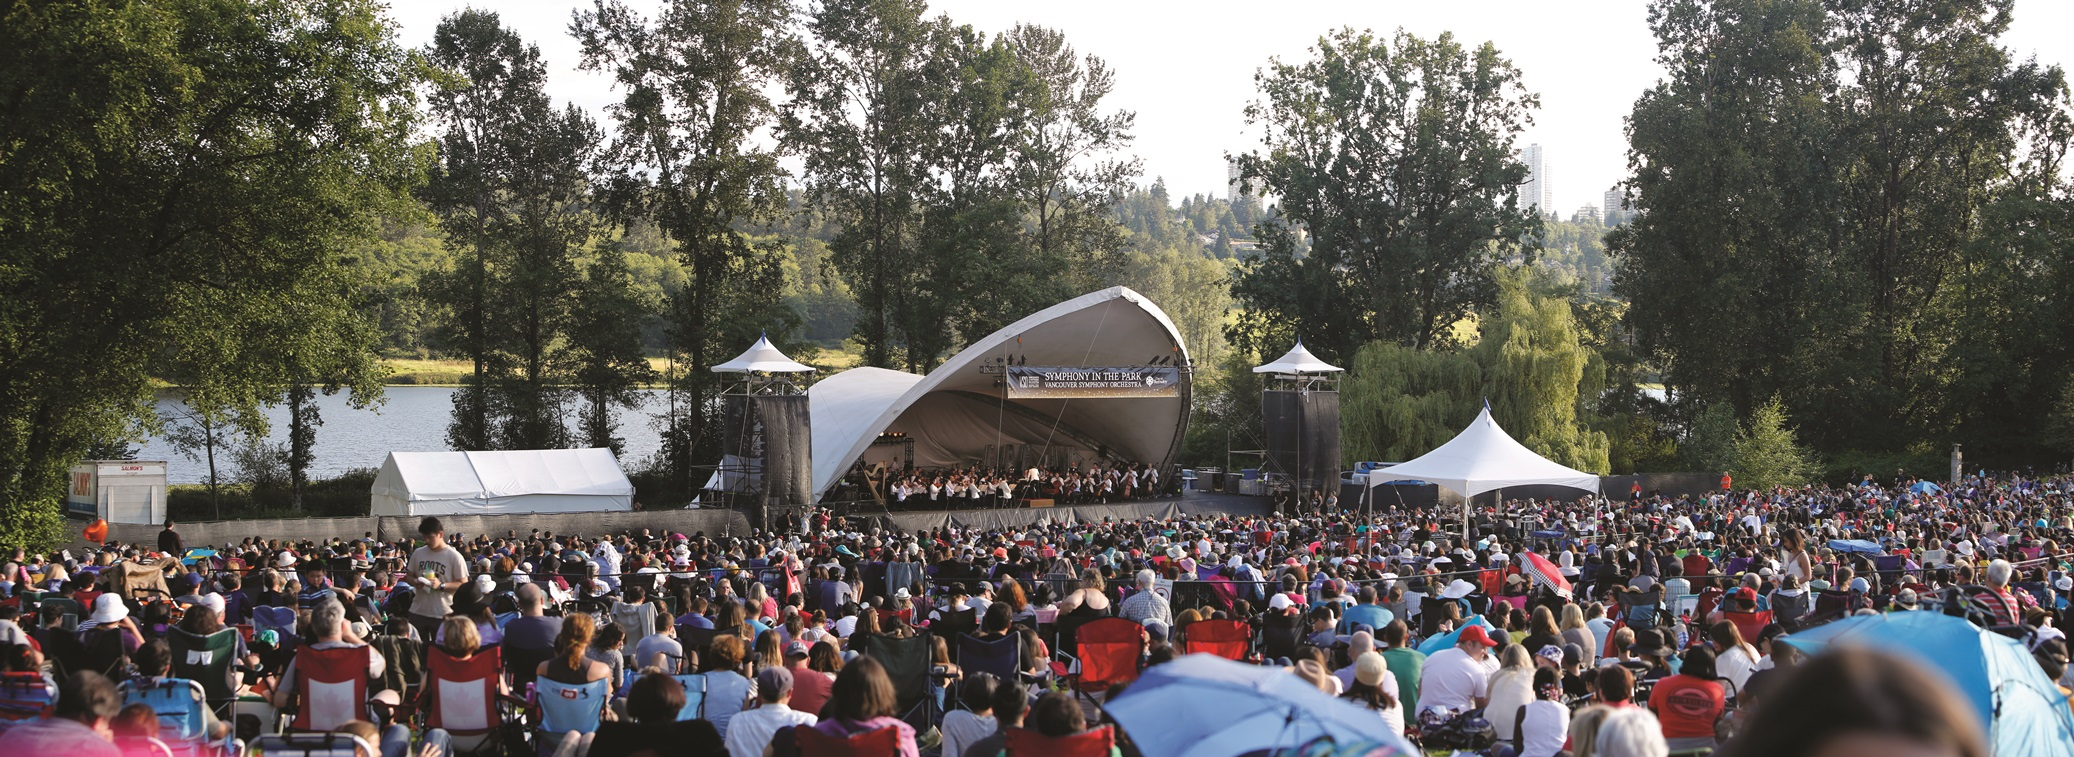 Panorama of the VSO tent and concert goers at the Symphony in the Park